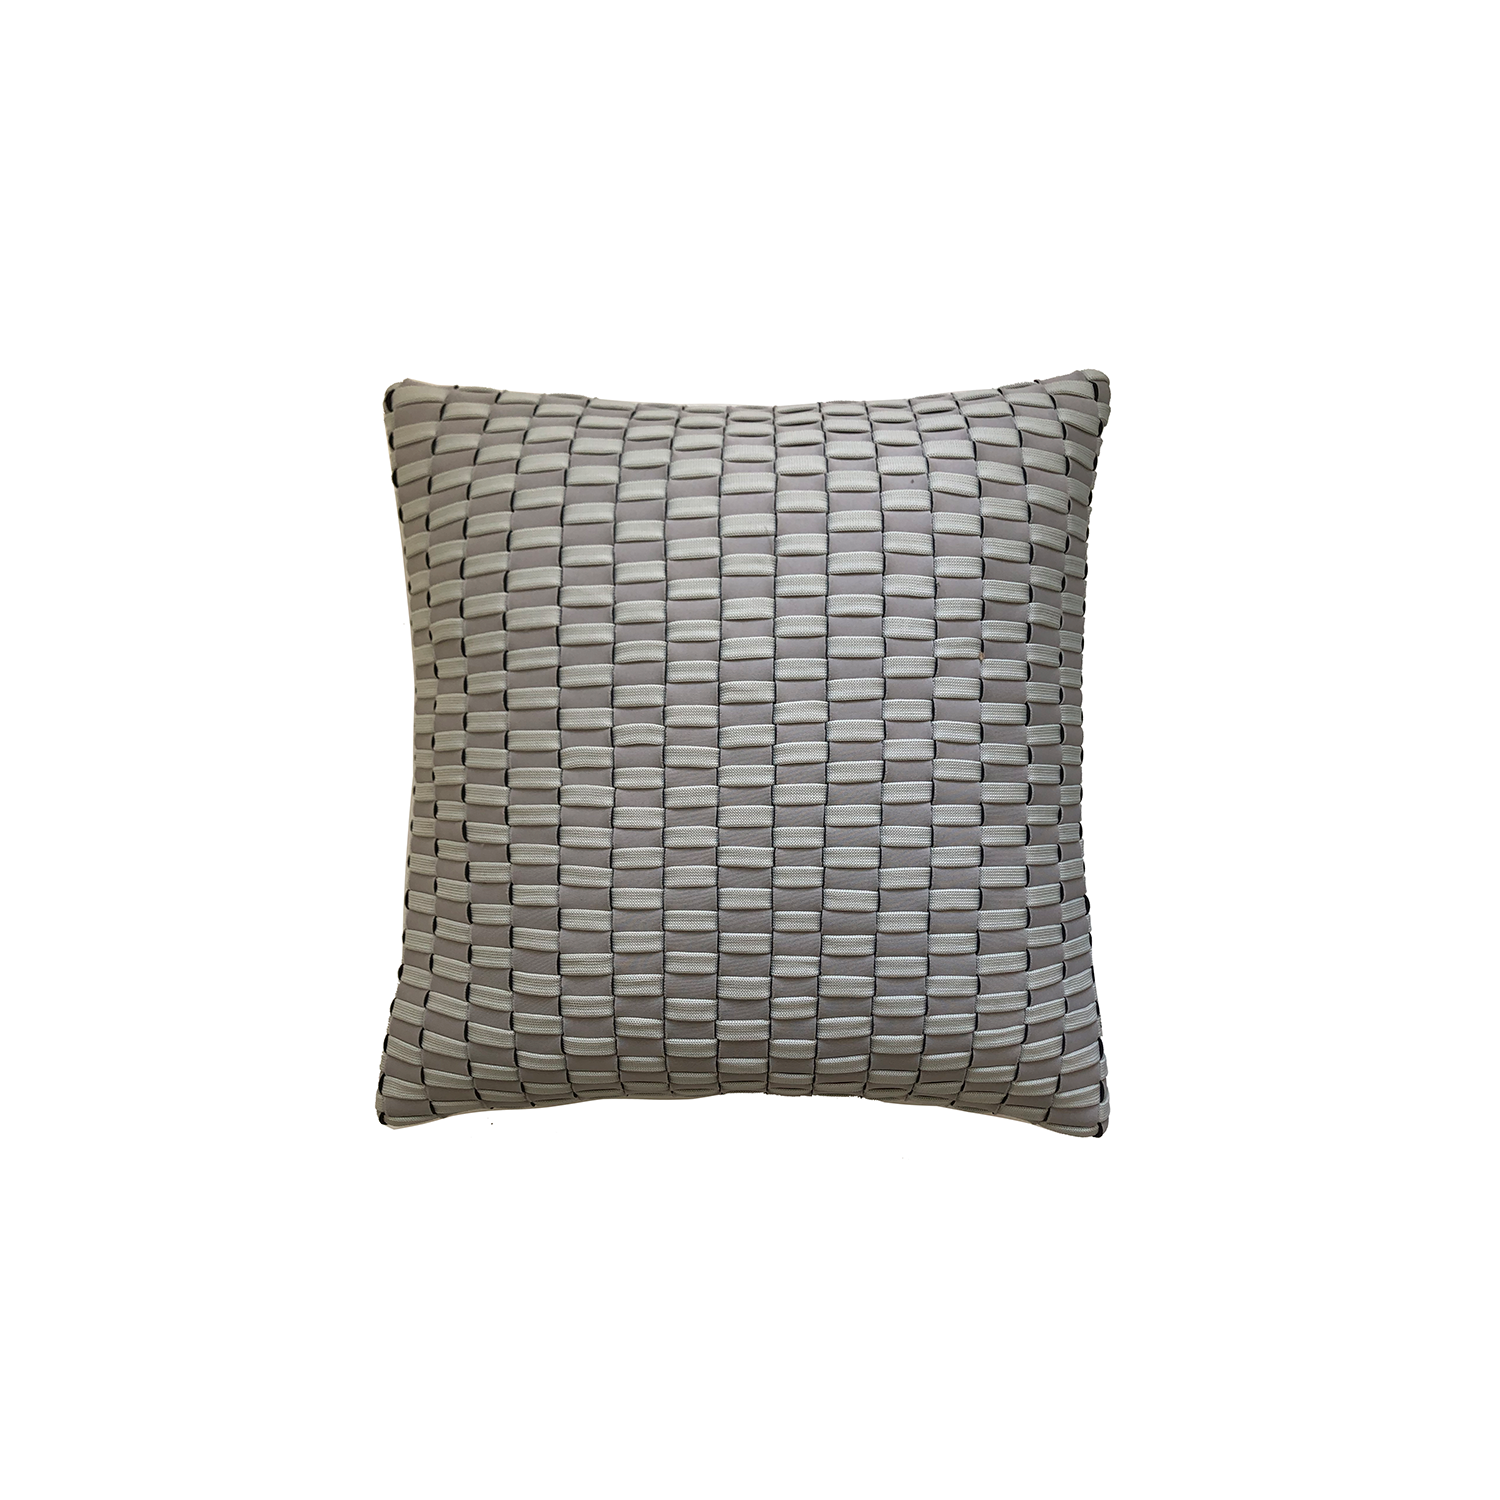 Maia Neo Cushion Square - The Maia Neo Cushion is carefully knitted within a trained community of women that found in their craft a way to provide for their families. The outdoor collection is made with synthetic fibres, resistant to weather exposure. The use of neoprene brings comfort and technology to the cushions.  The front panel is in neoprene combined with hand woven nautical cord, made in Brazil.  The inner cushion is in Hollow Fibre, made in the UK.  Please enquire for more information and see colour chart for reference.  | Matter of Stuff